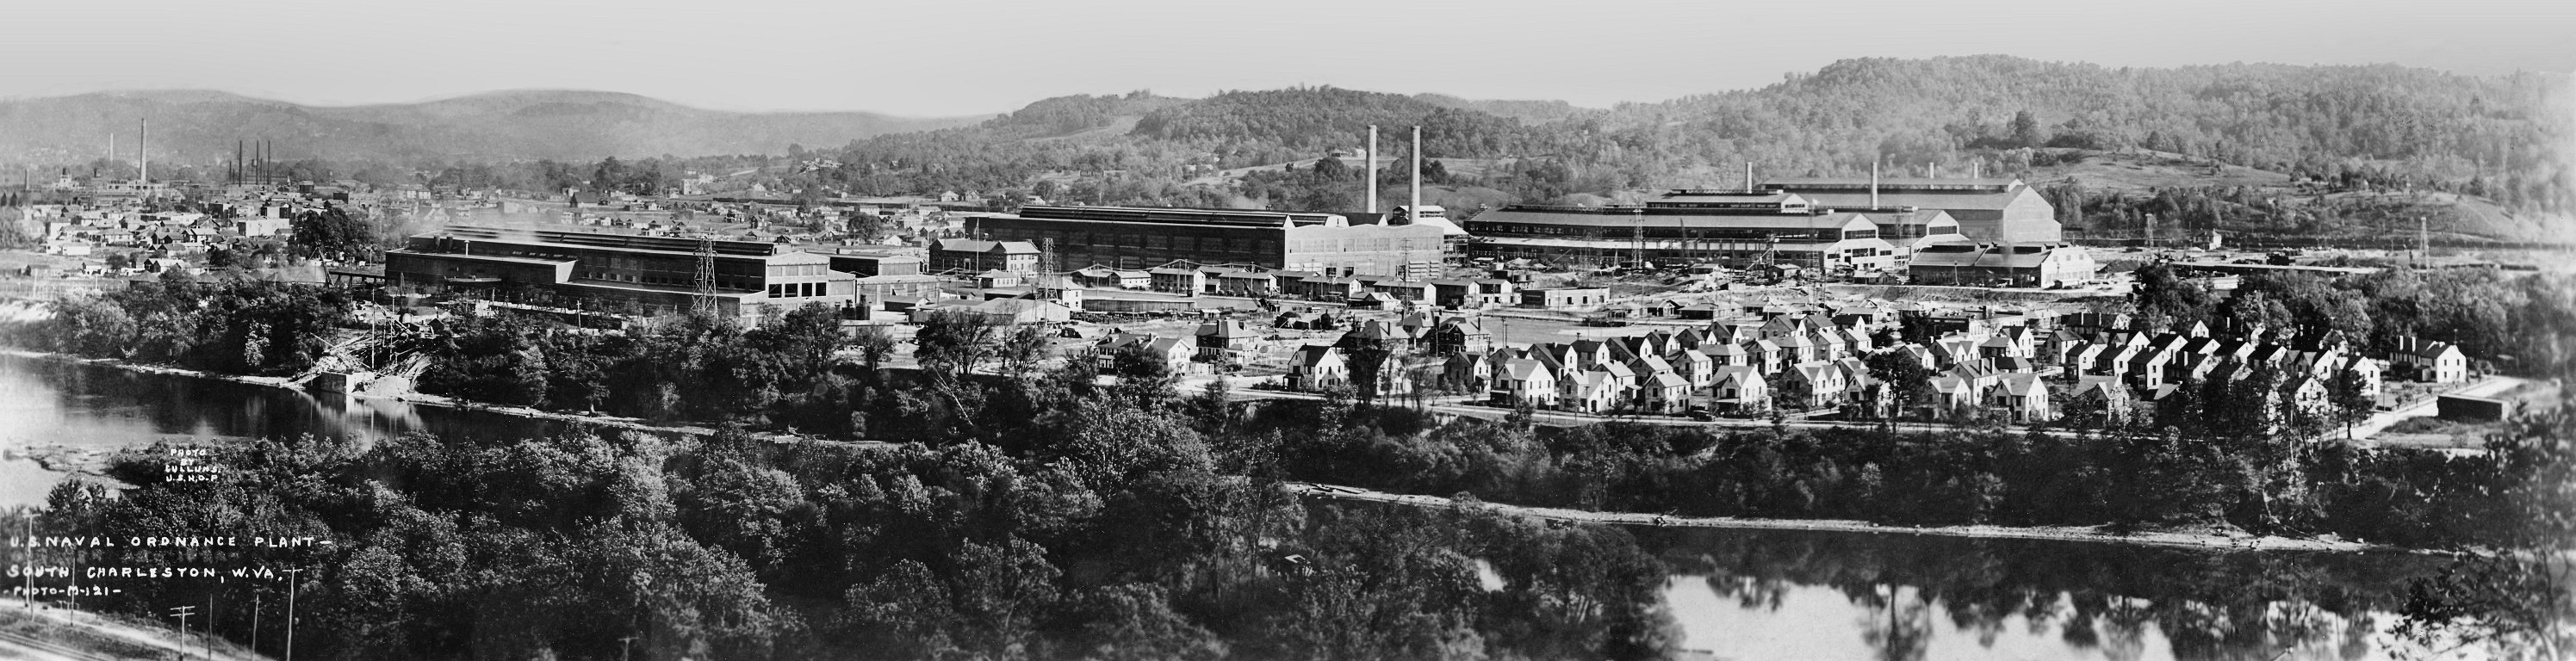 Panorama of the Naval Ordnance Plant (center). Armor Park, nestled between MacCorkle Avenue and the Kanawha River, is at right. Armor Park provided homes for 85 families.